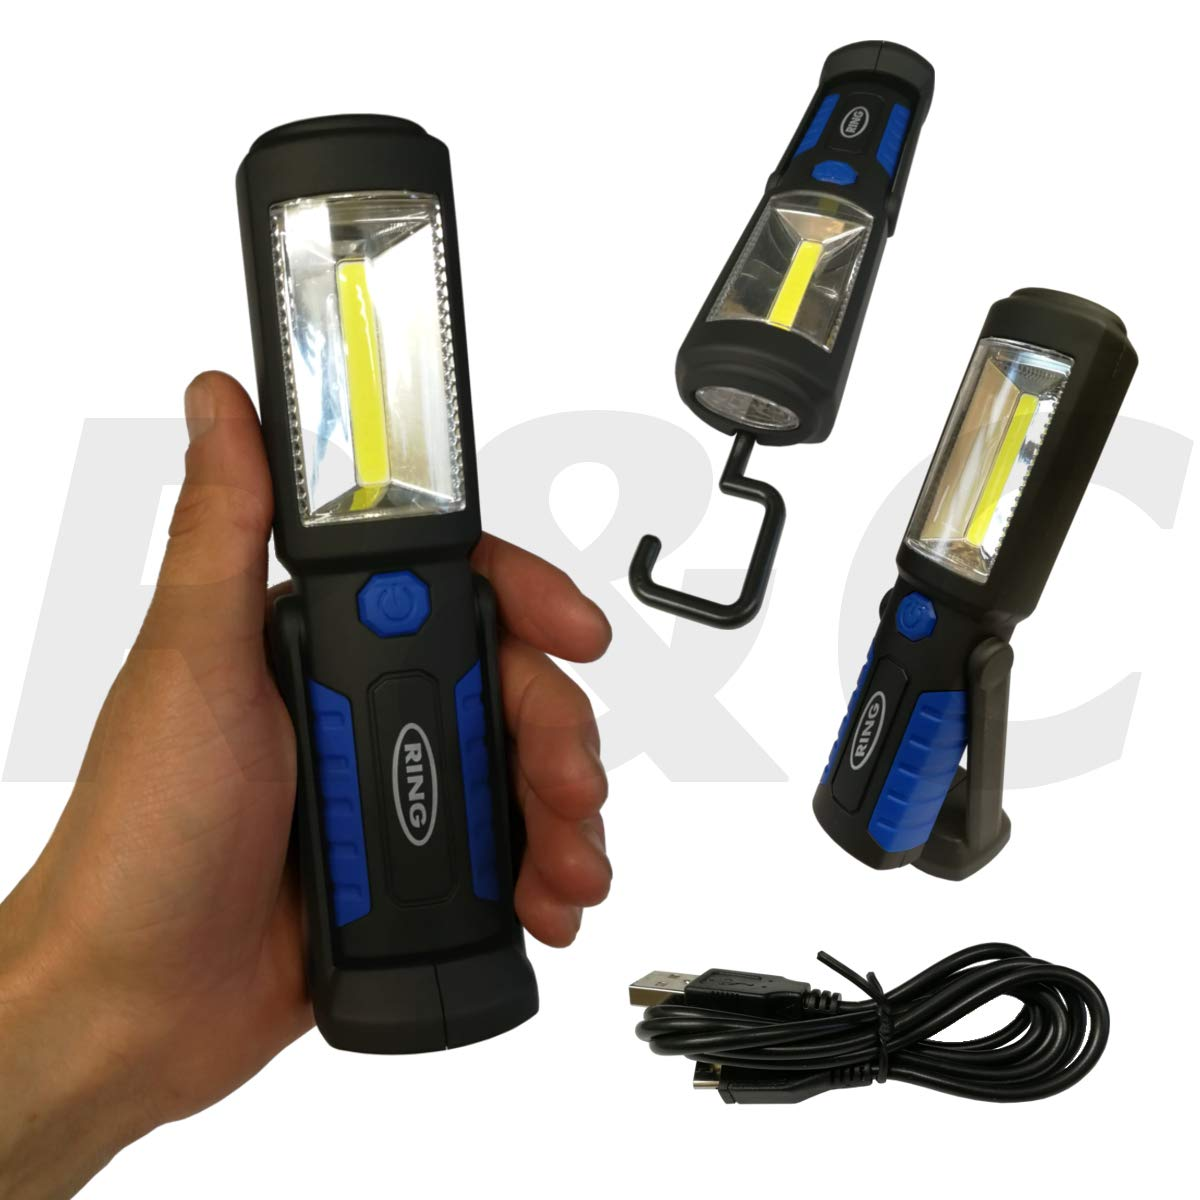 Ring Super Bright LED Inspection Light Rechargeable COB Work Lamp with Multi Angle Base Magnet & Hook RNG